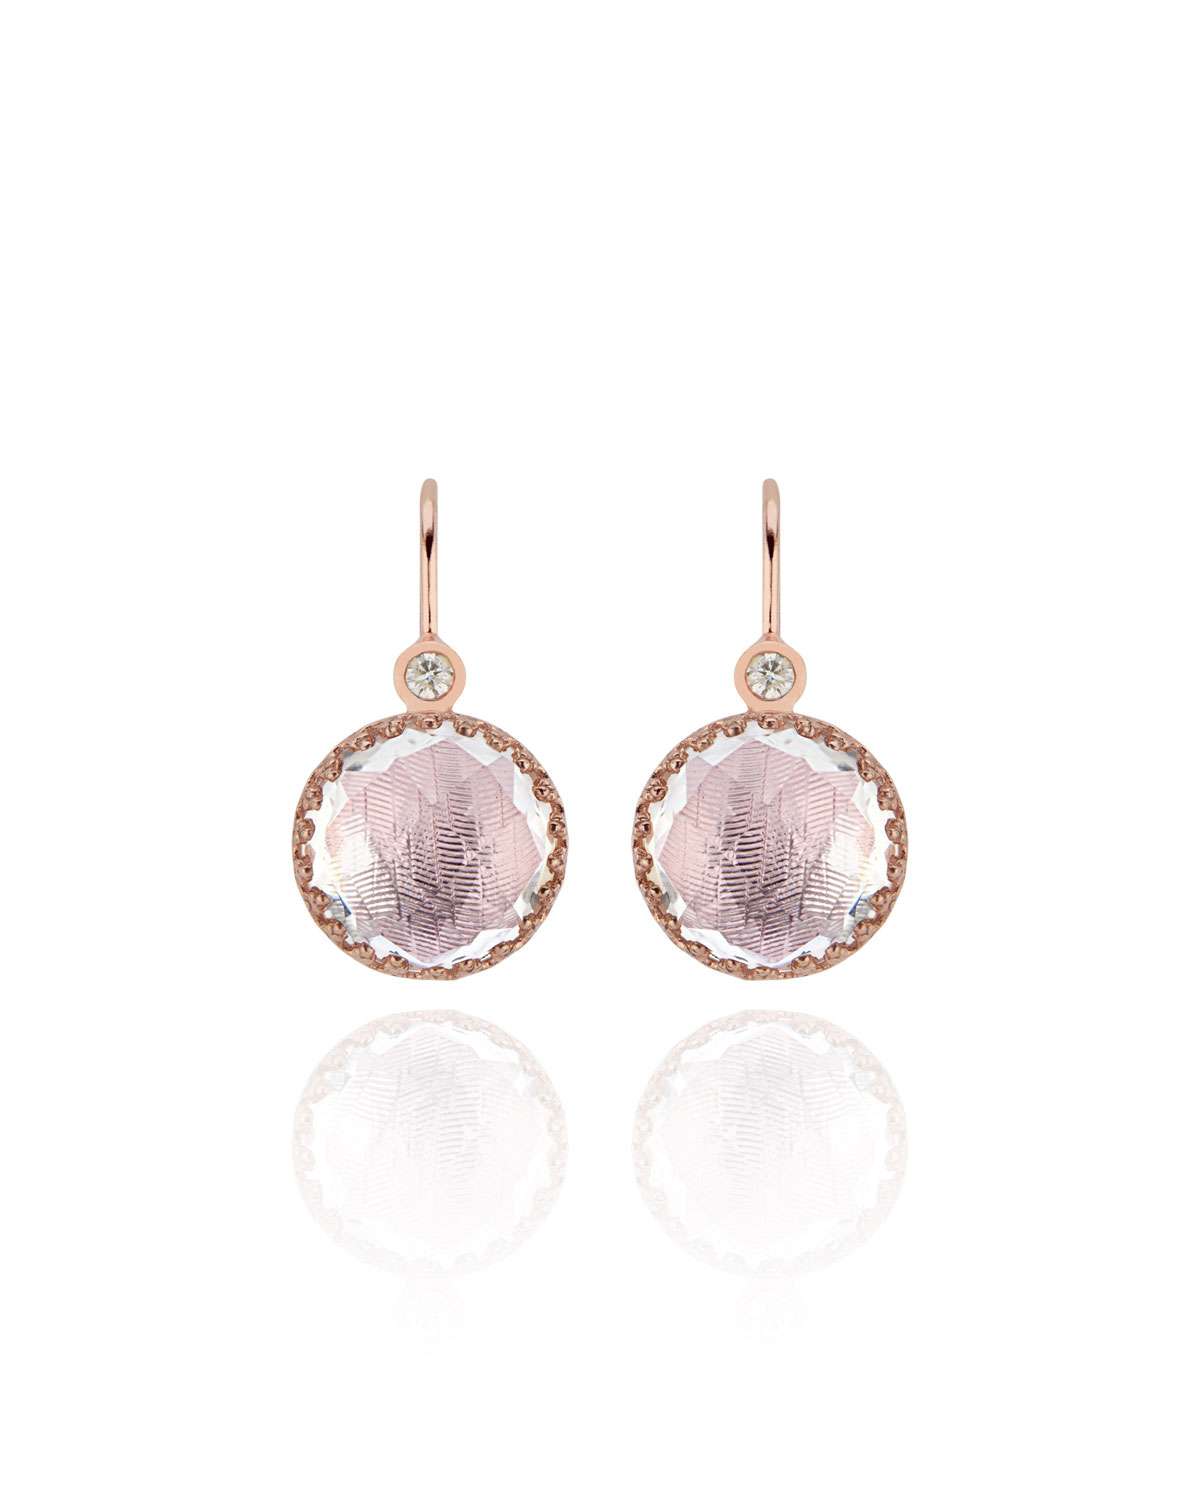 LARKSPUR & HAWK Olivia Diamond & Drop Earrings In Rose Gold Wash With Ballet Foil in Pink